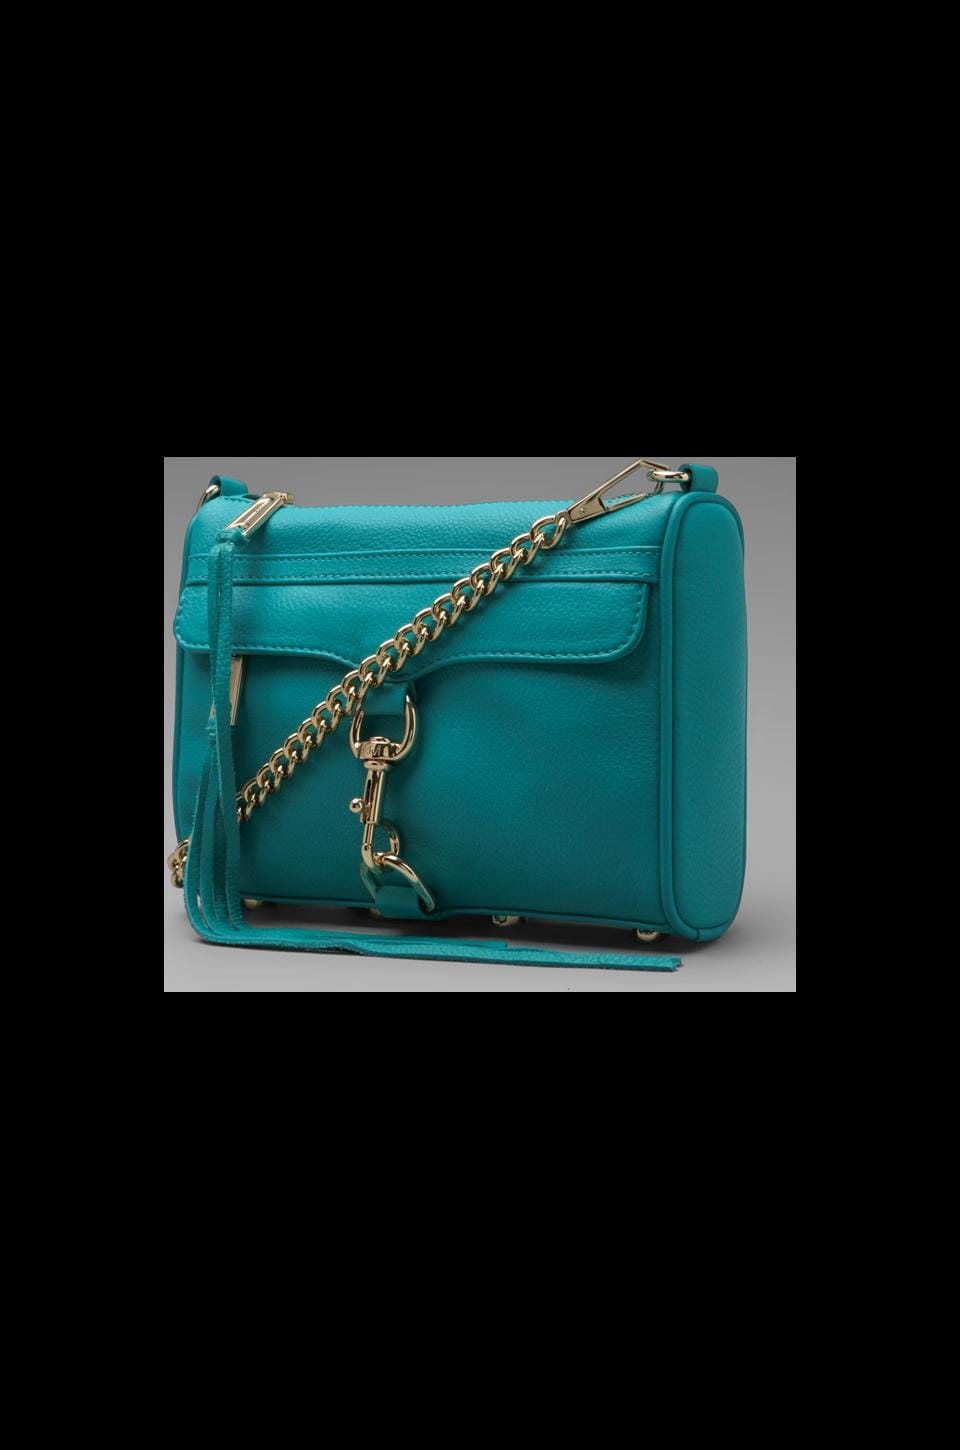 Rebecca Minkoff Mini MAC in Sea Green